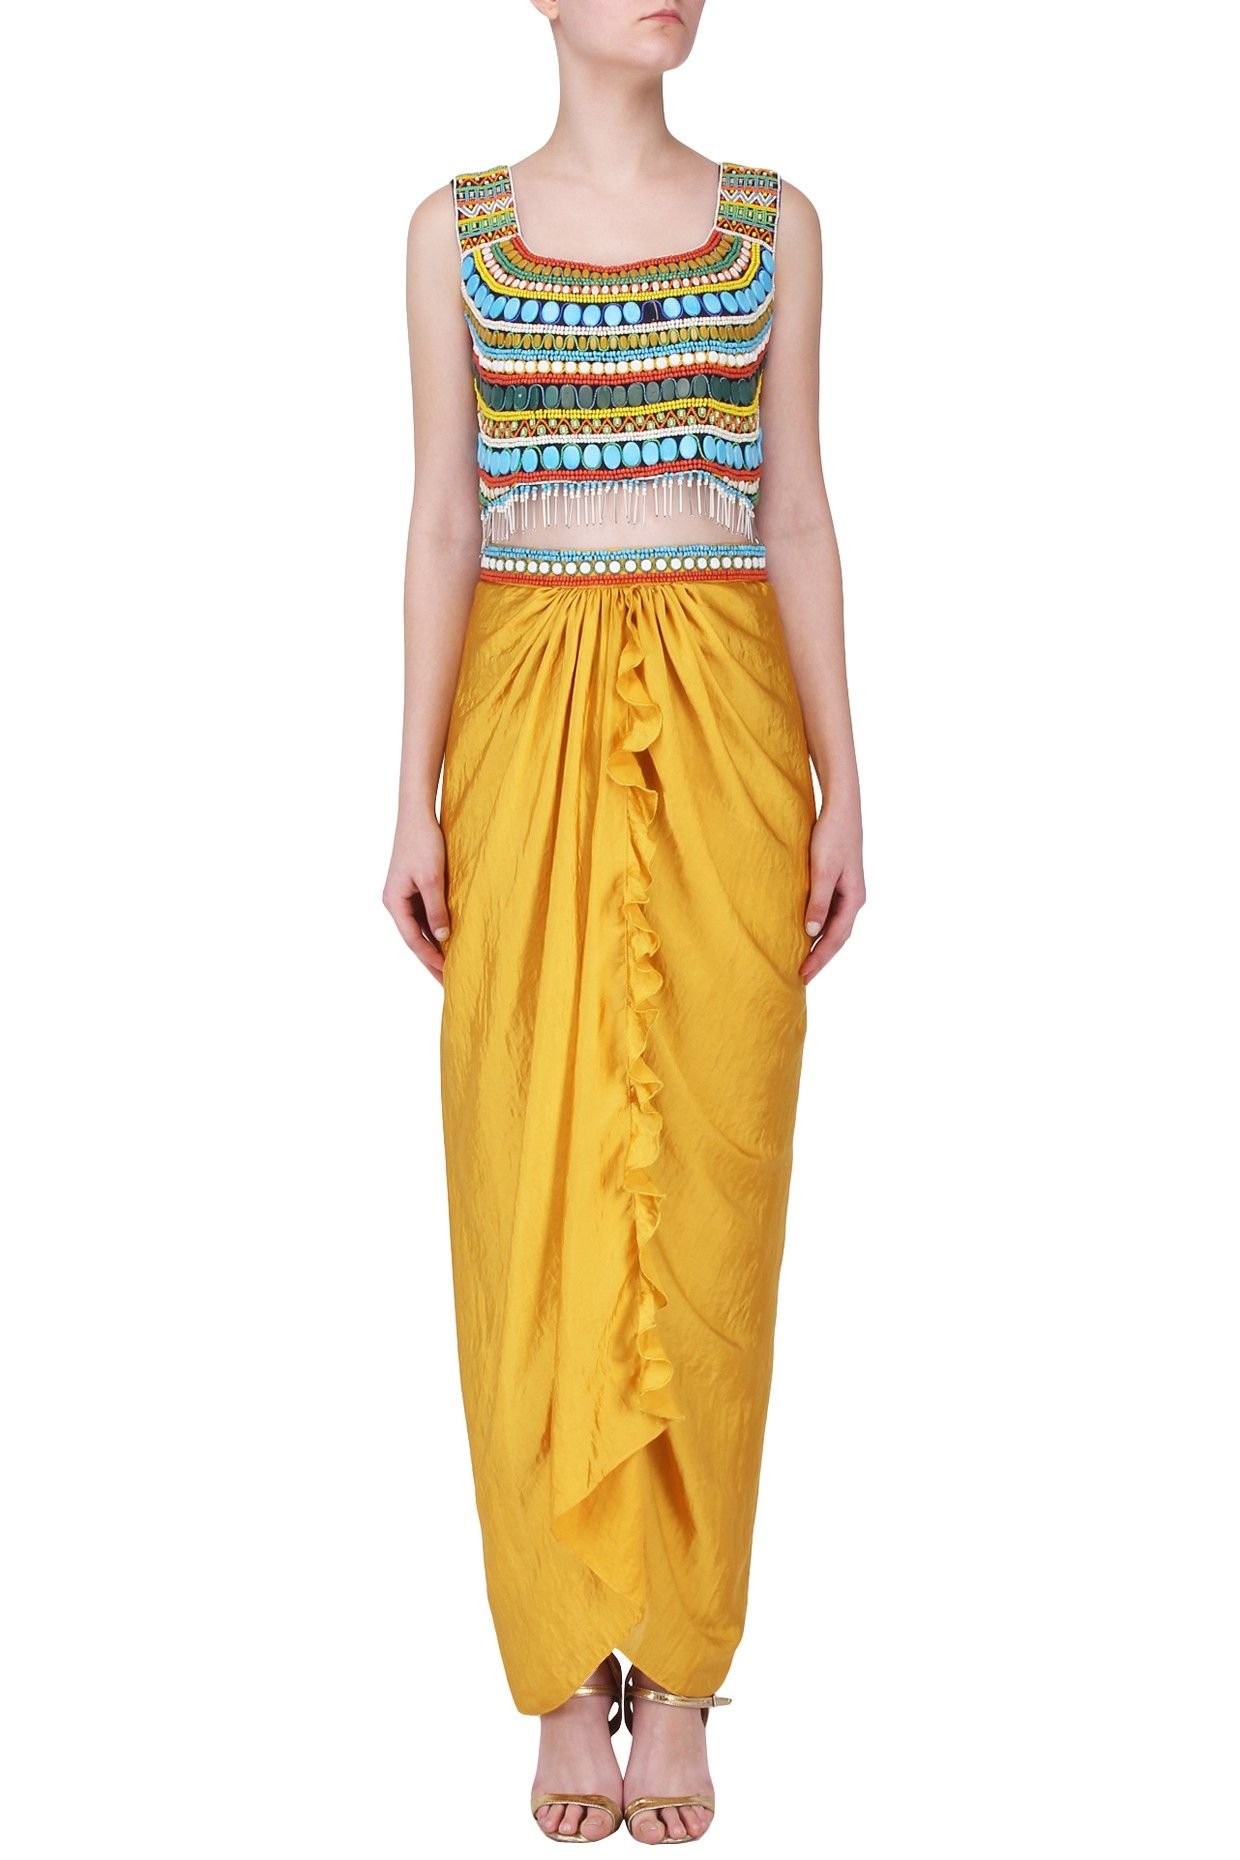 fd7f2c329066a RUHMAHSA Mustard Beaded Crop Top and Drape Skirt Set. Shop Now!  ruhmahsa   ethnic  mustard  croptop  beaded  drapeskirt  silk  fringes  indianfashion  ...